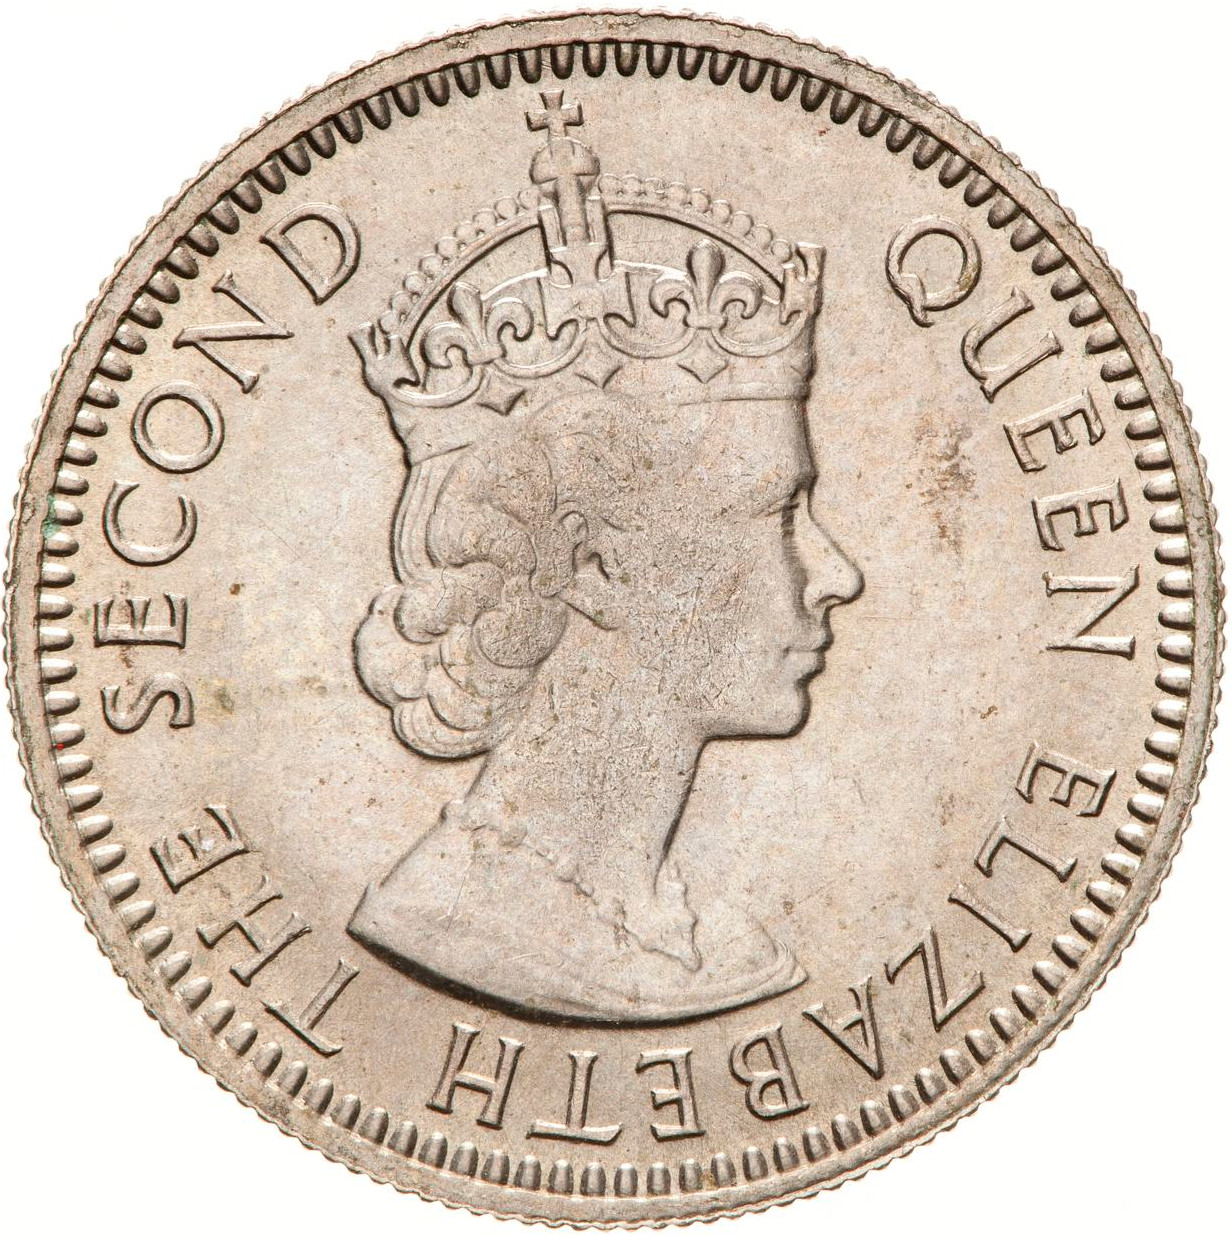 Sixpence 1961: Photo Coin - 6 Pence, Fiji, 1961